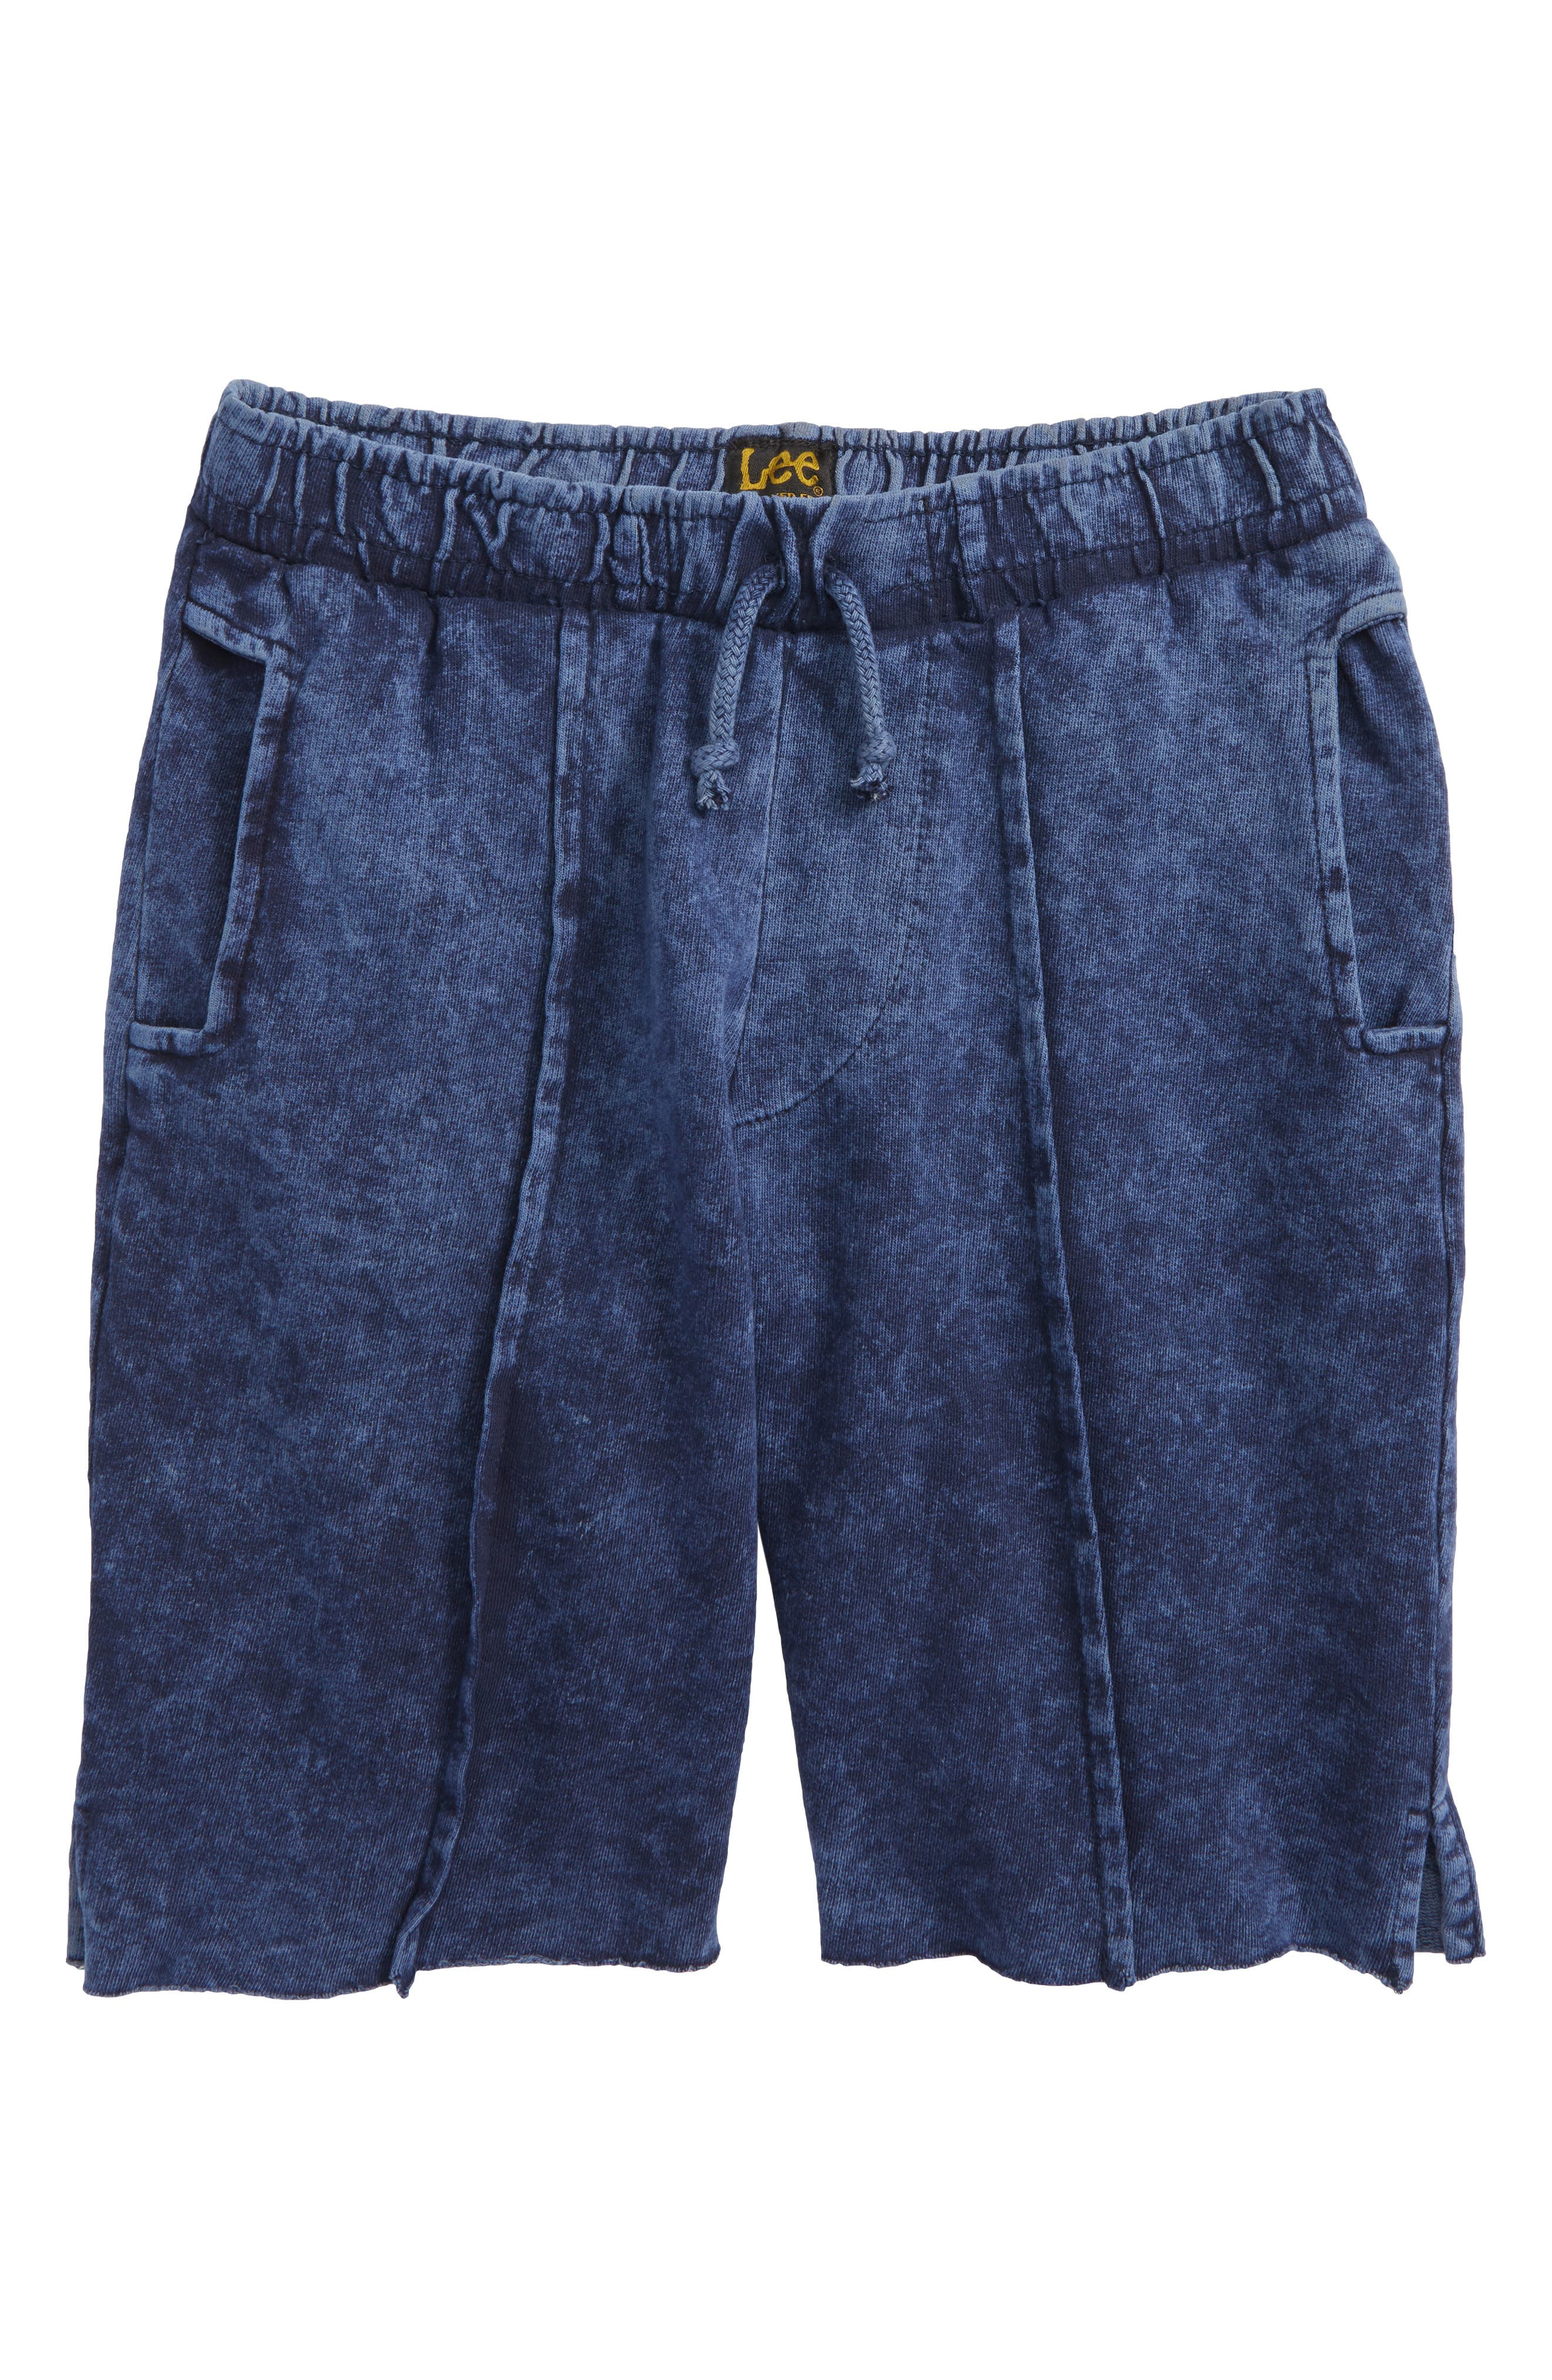 Acid Wash Pull-On Denim Shorts,                         Main,                         color, 412